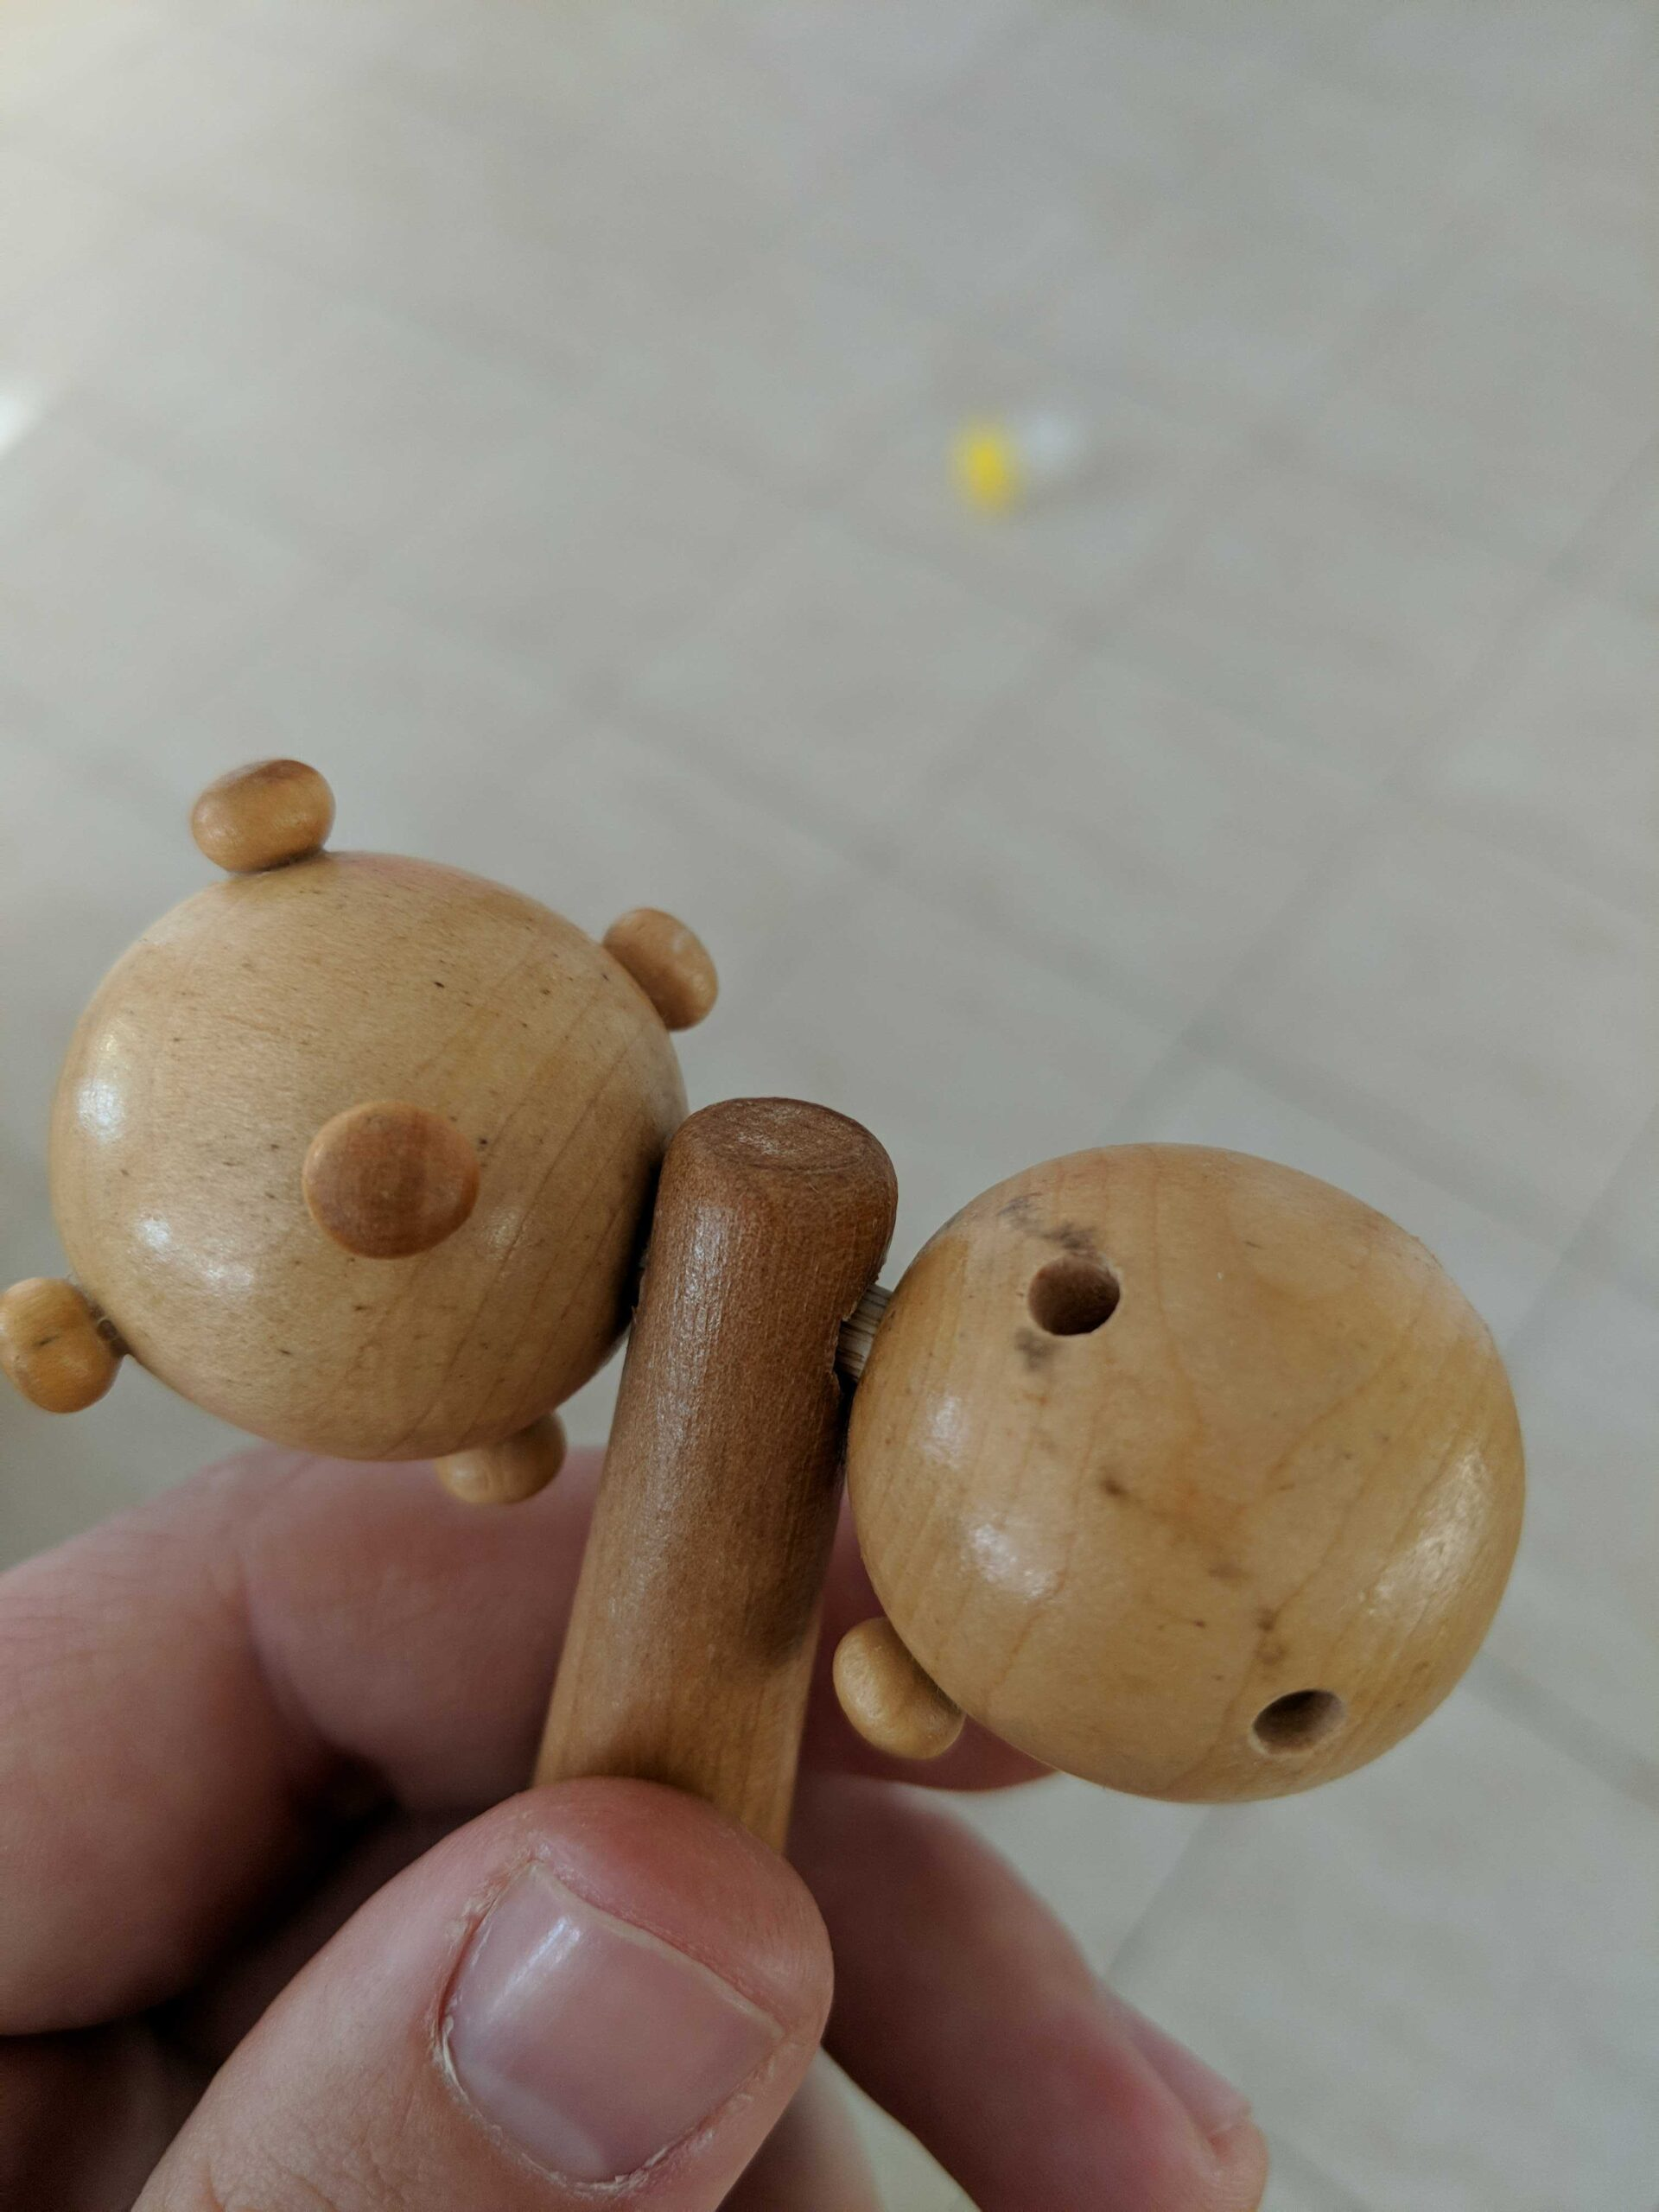 holes from missing knobs in massager